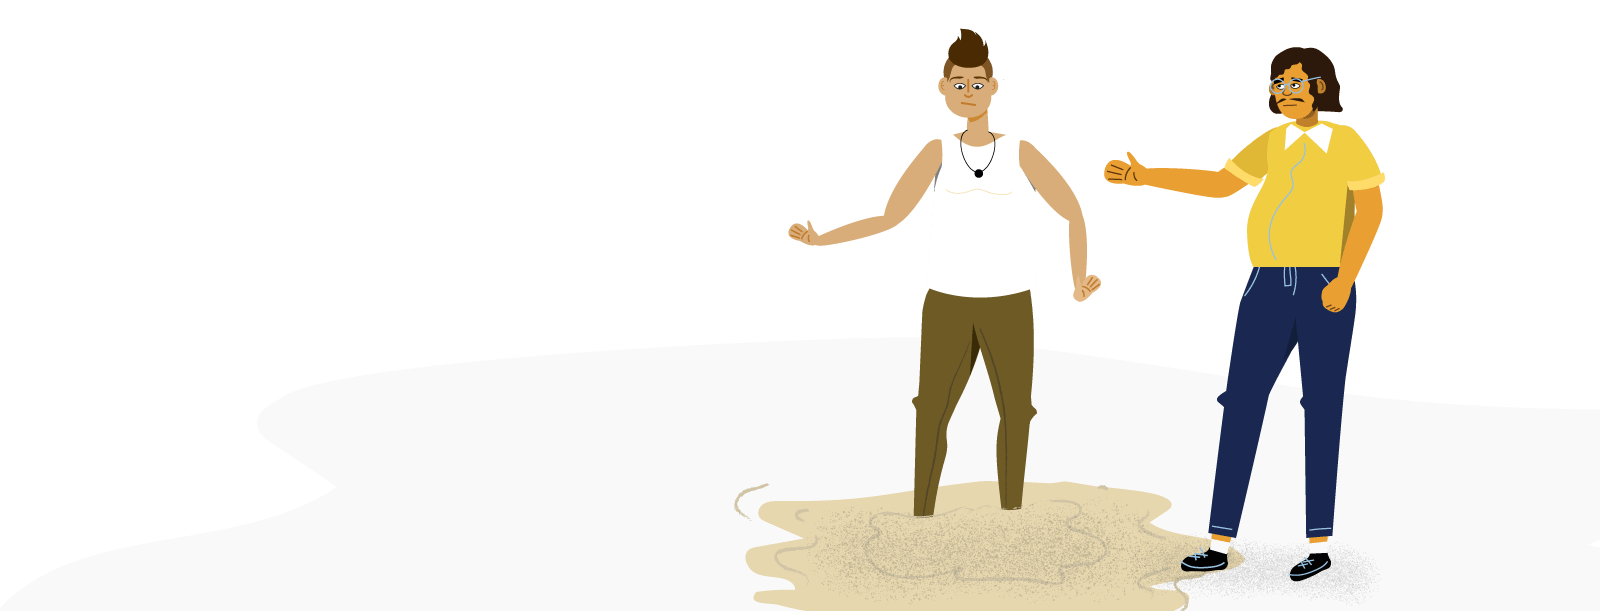 Illustration of a man helping his friend out of metaphorical quick sand